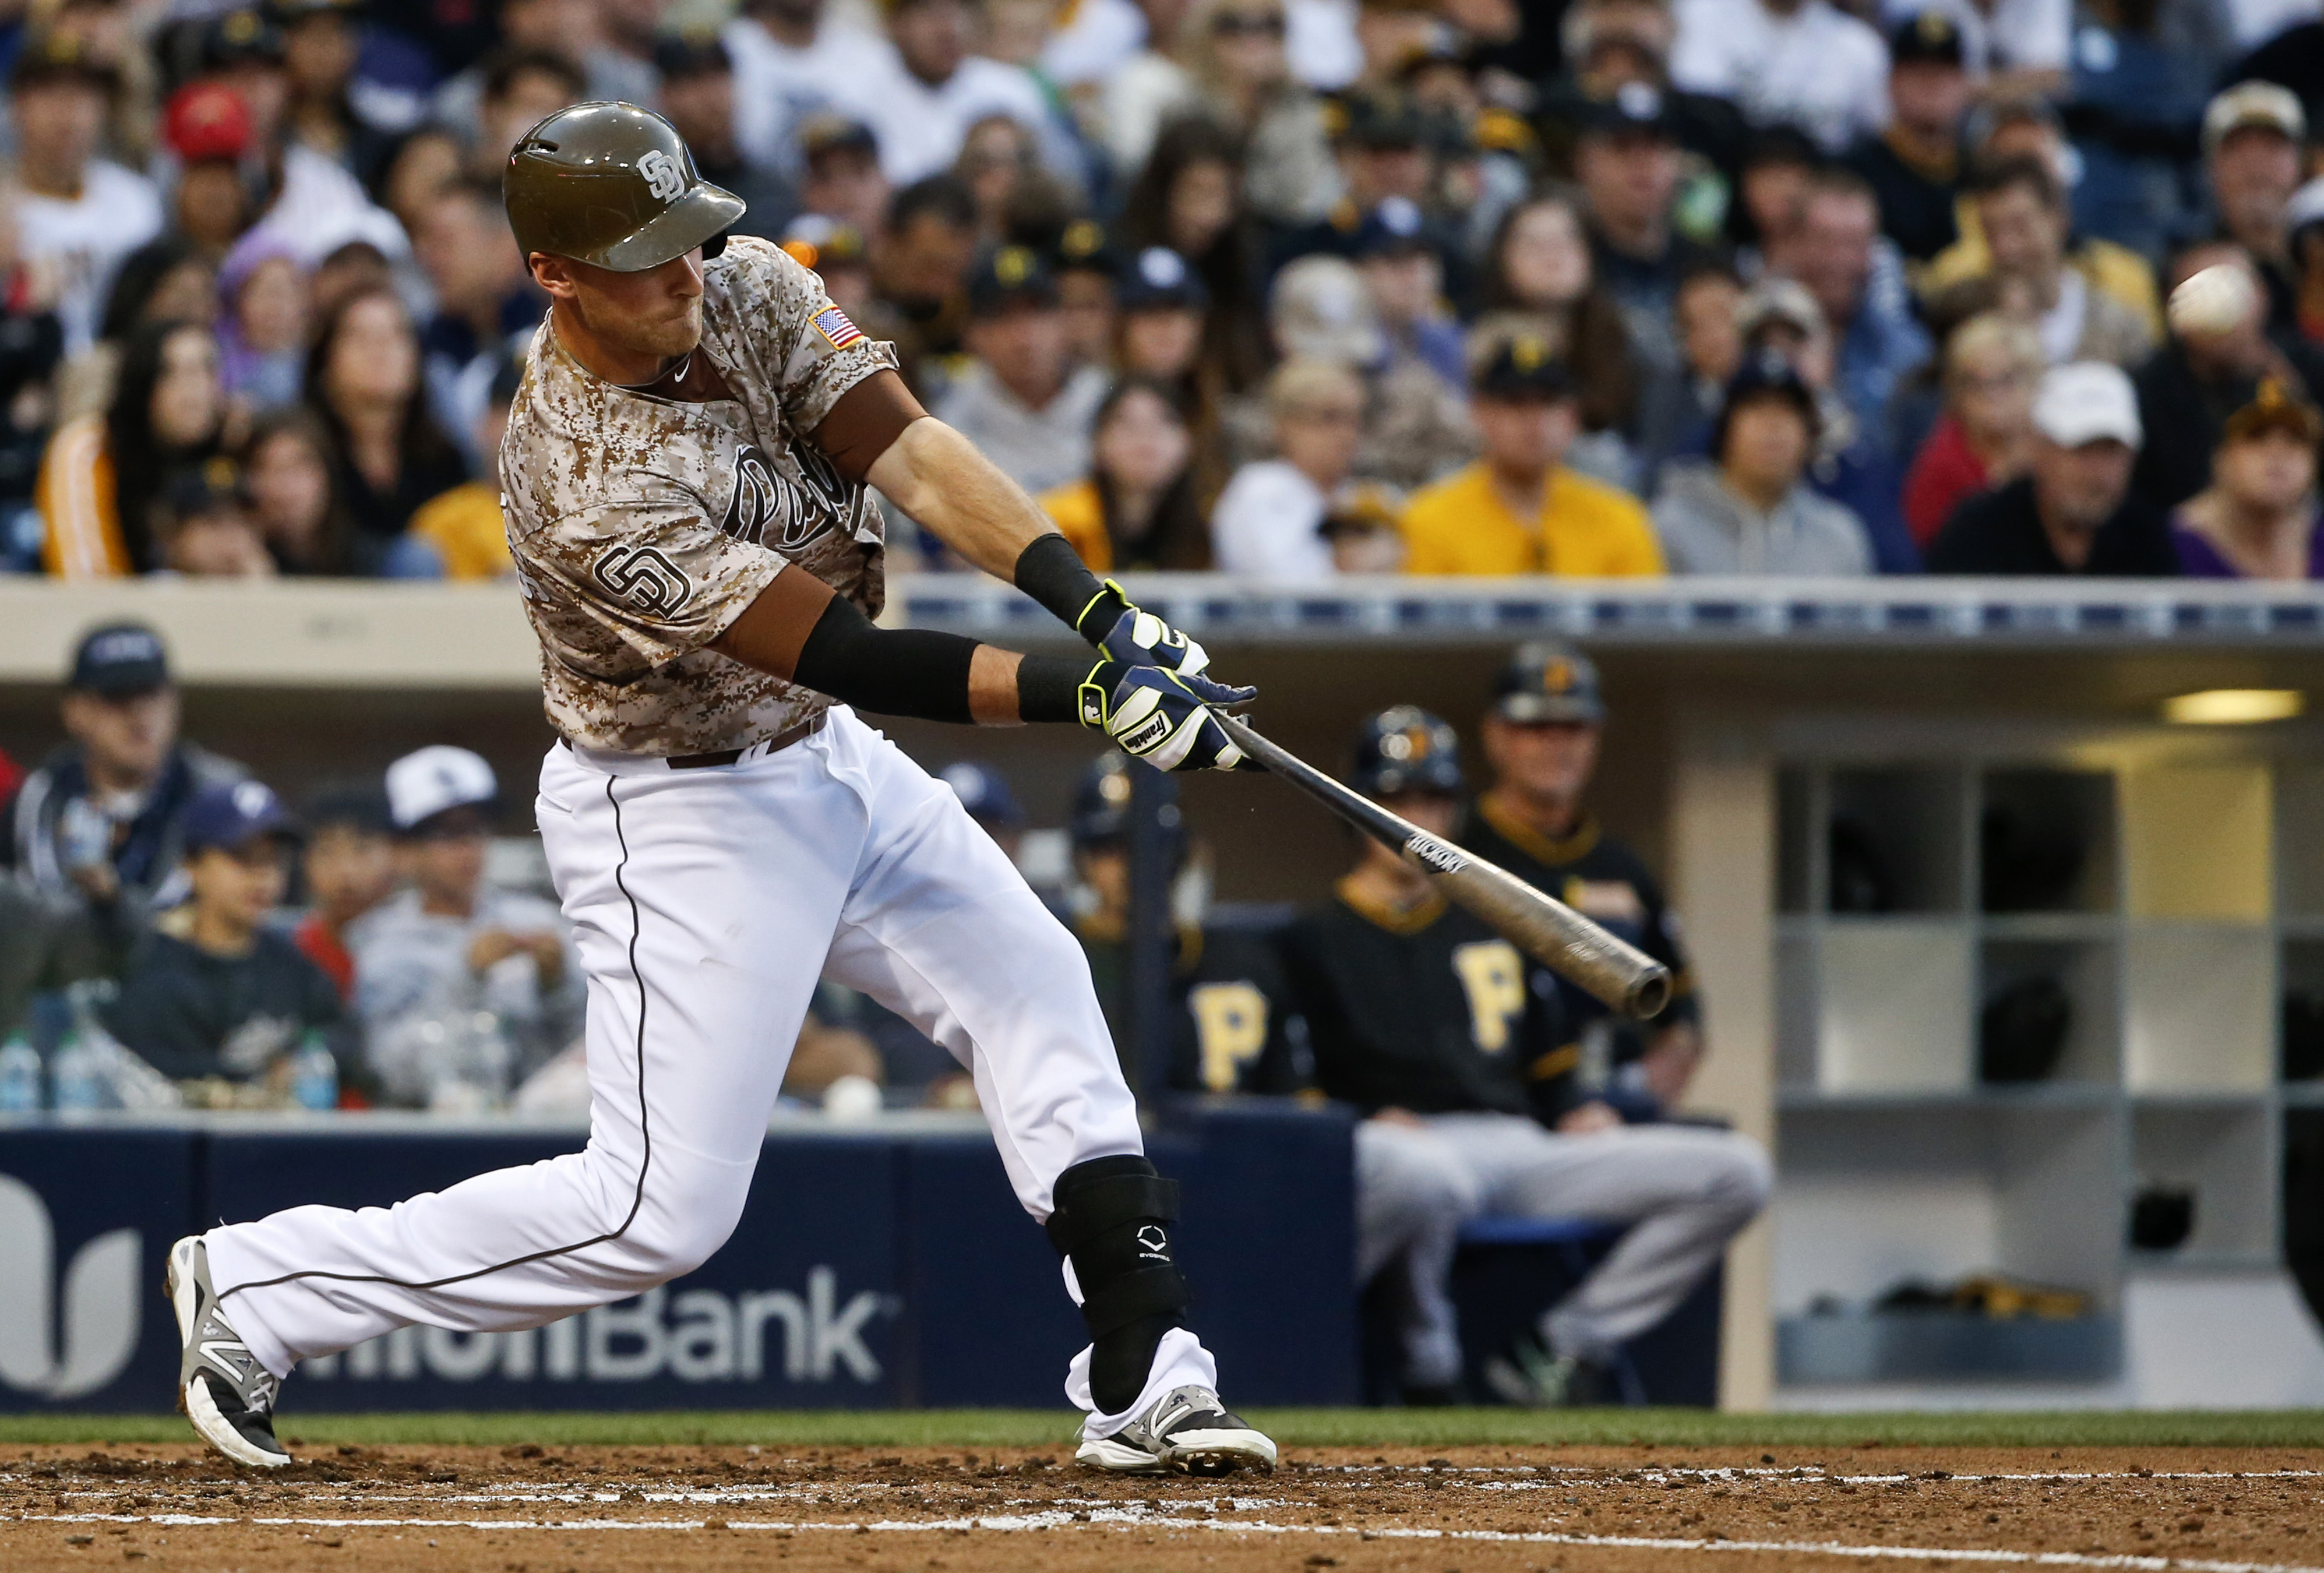 San Diego Padres' Will Middlebrooks drive in his third run of the game with a deep sacrifice fly to center field in the fourth inning of a baseball game against the Pittsburgh Pirates Sunday, May 31, 2015, in San Diego.  (AP Photo/Lenny Ignelzi)